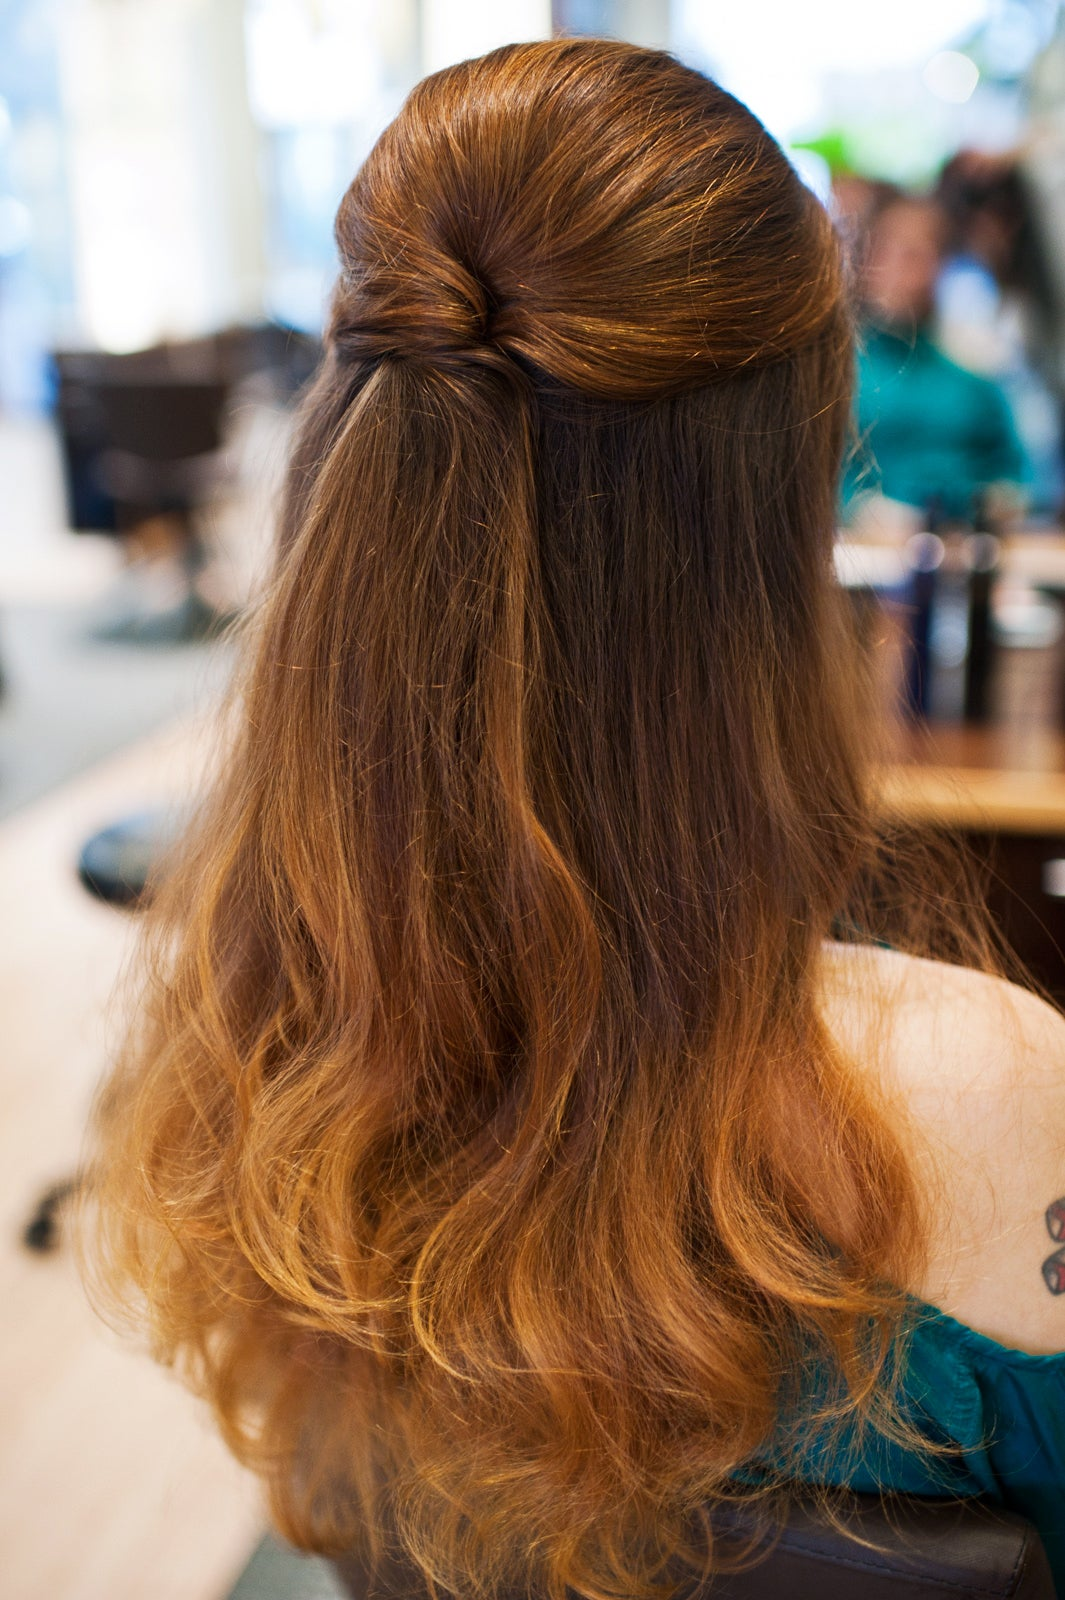 5s Hairstyles - How To Do Retro Hair